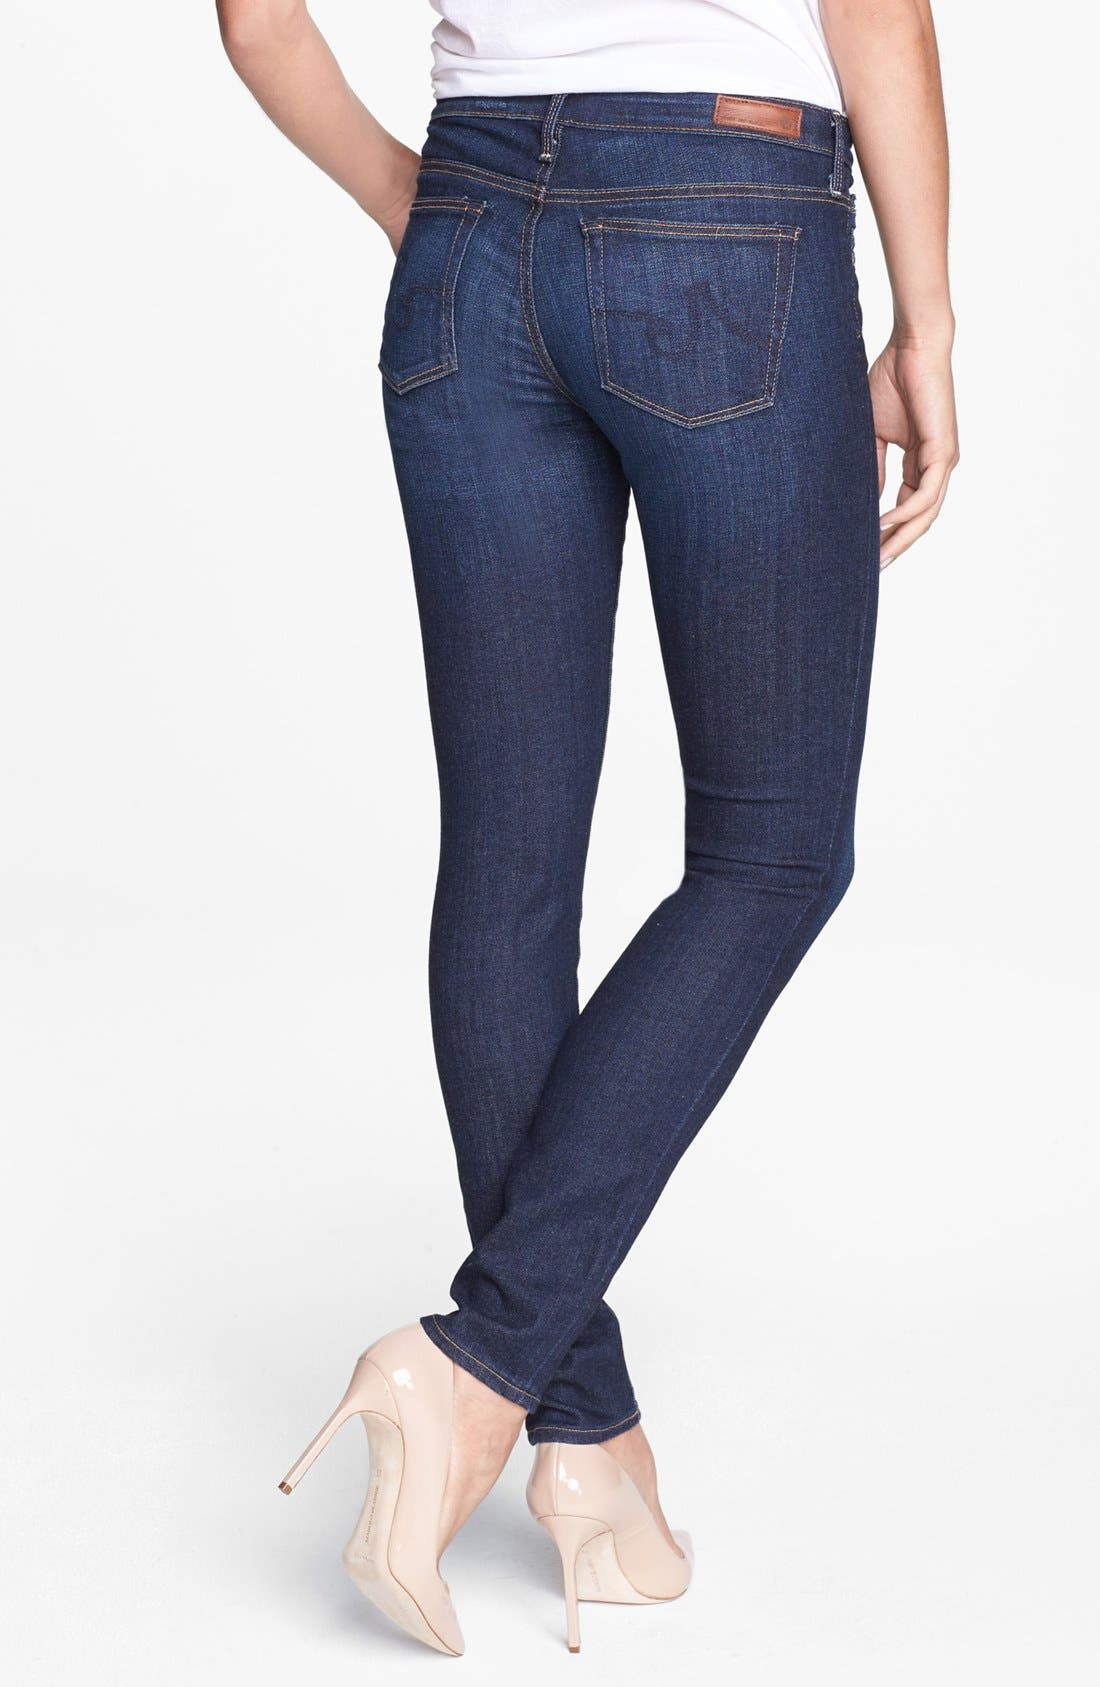 'The Stilt' Cigarette Leg Jeans,                             Alternate thumbnail 2, color,                             Free